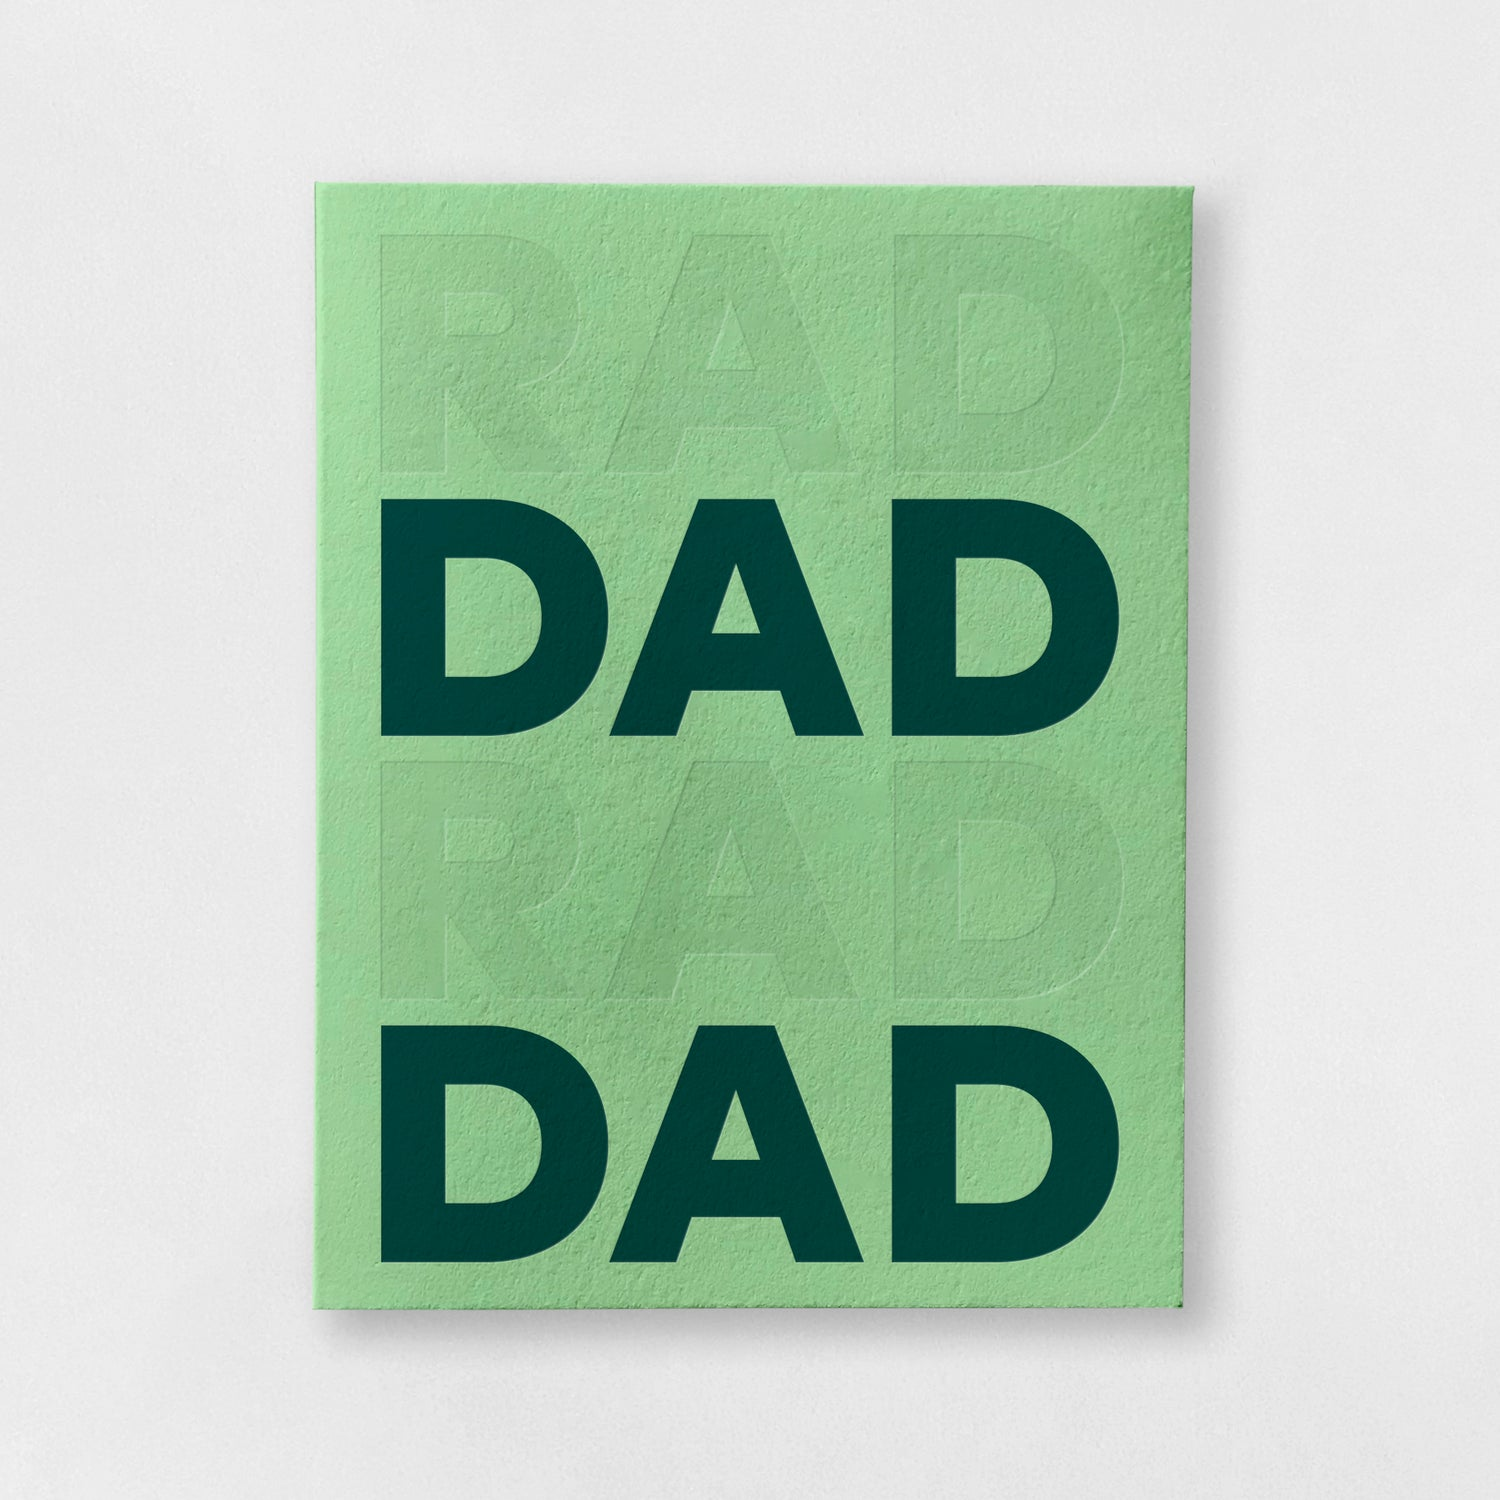 Image of Father's Day - RAD DAD